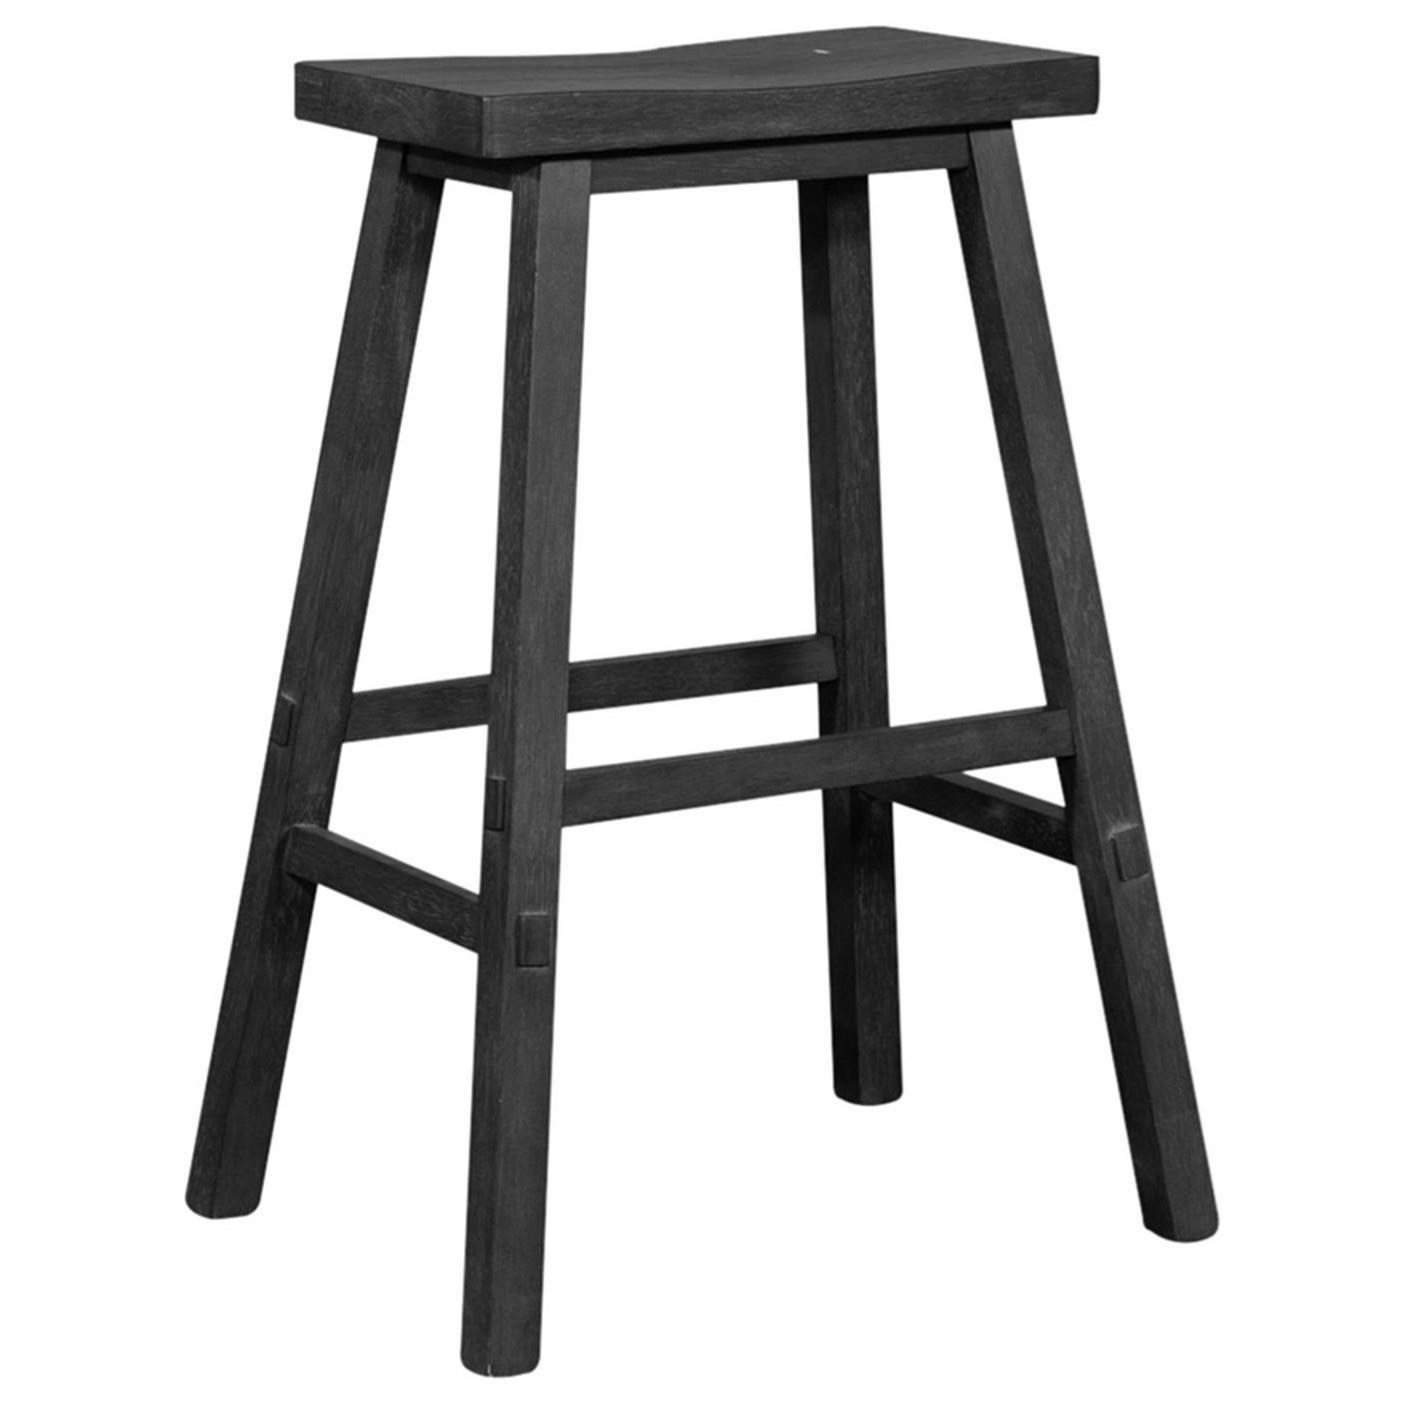 Creations II 30 Inch Sawhorse Barstool by Libby at Walker's Furniture